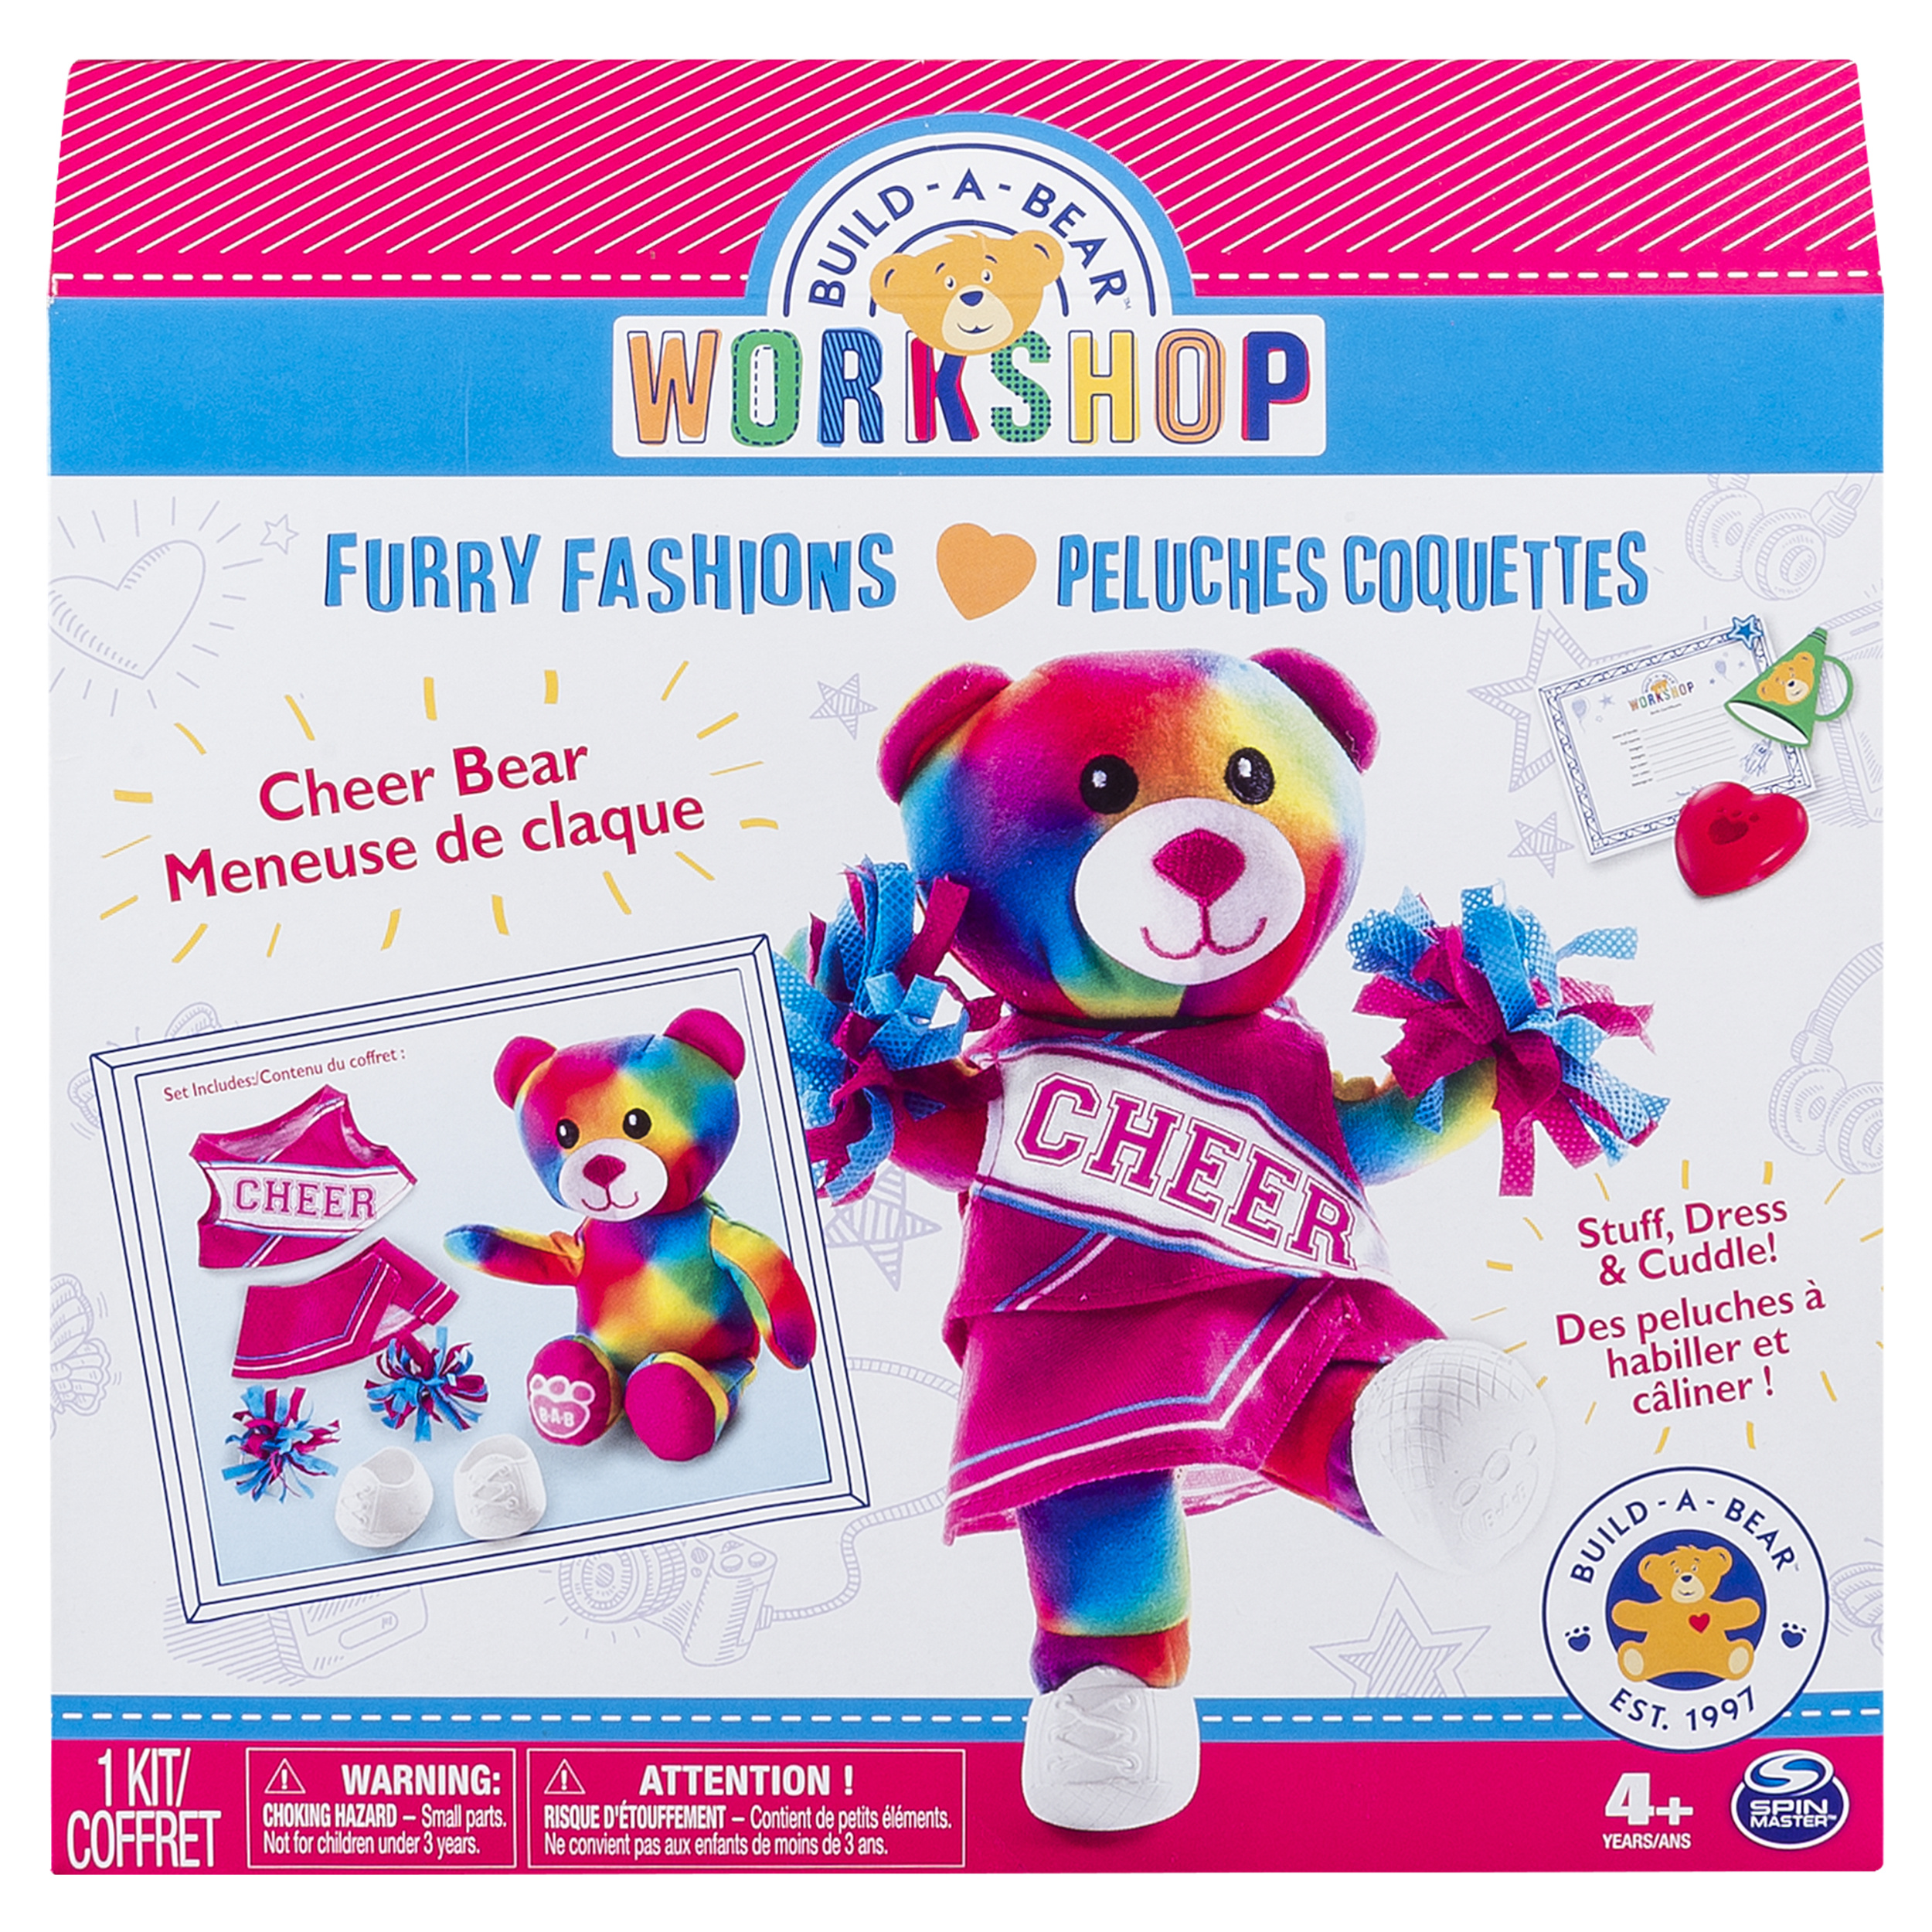 Build-A-Bear Workshop - Furry Fashions - Cheer Bear